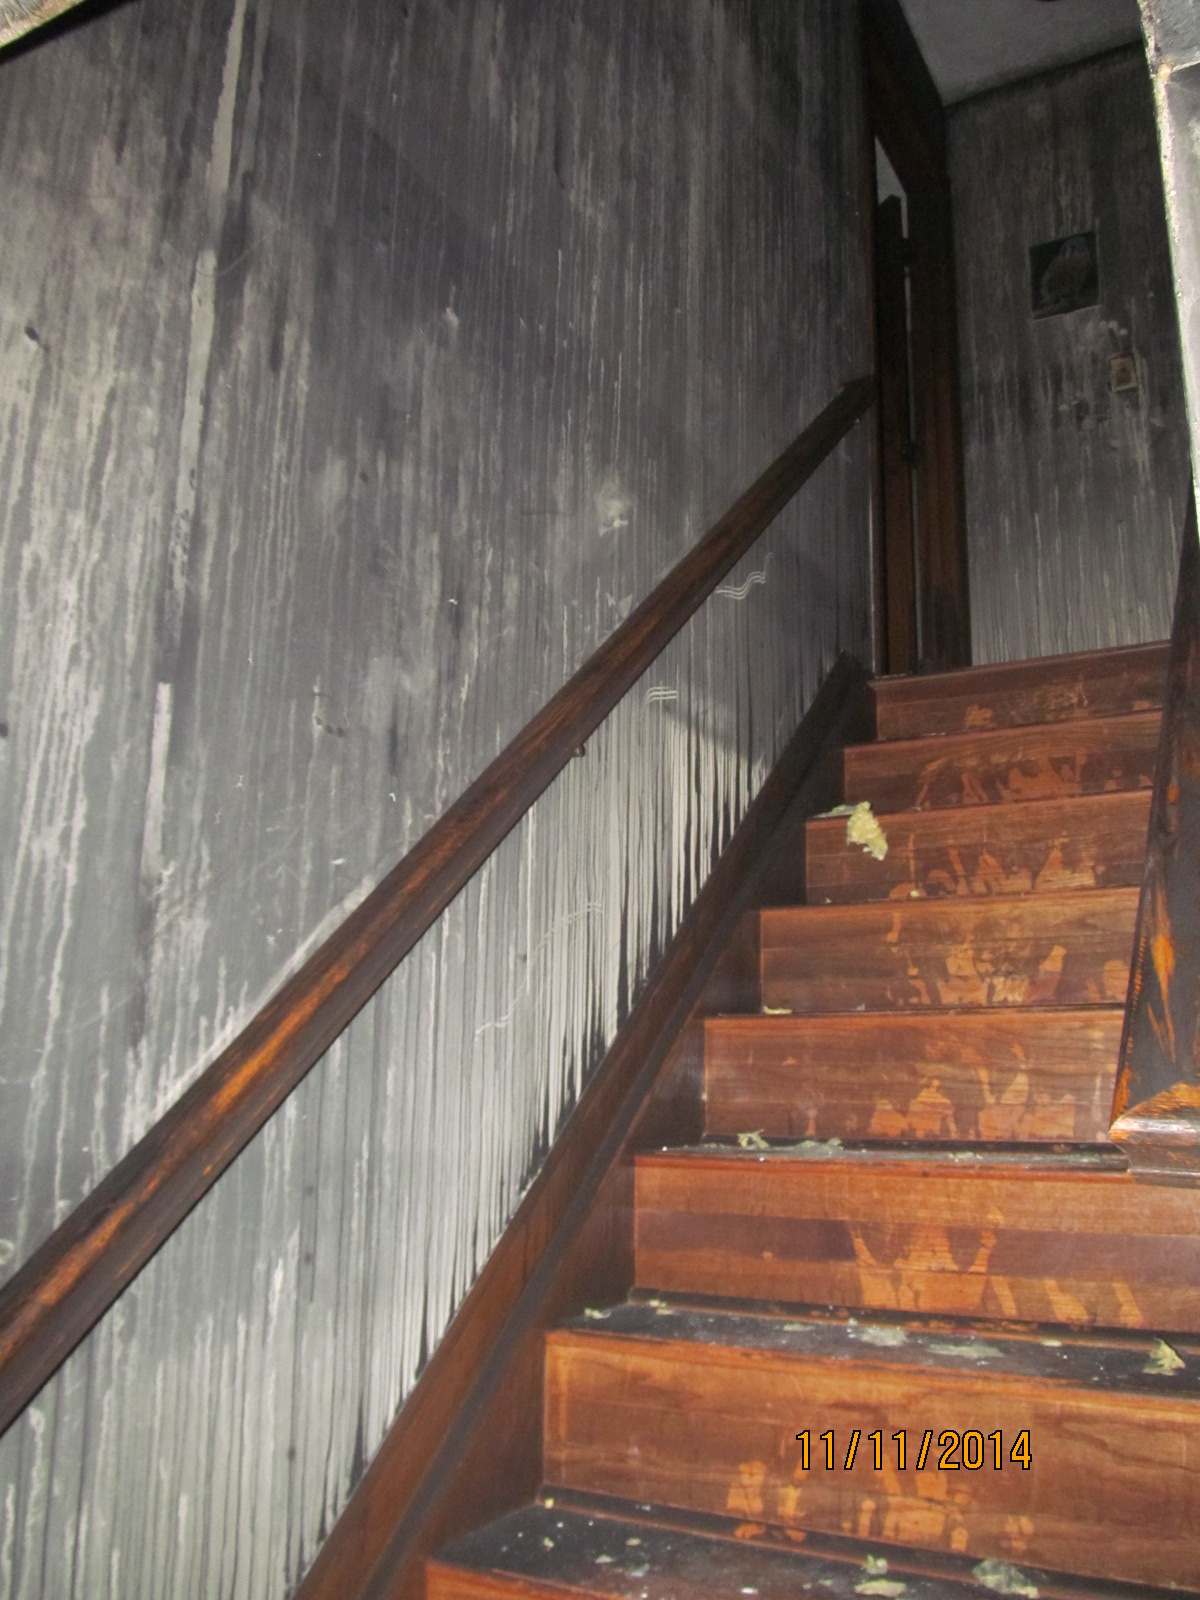 Stairs Smoke and Fire Damage